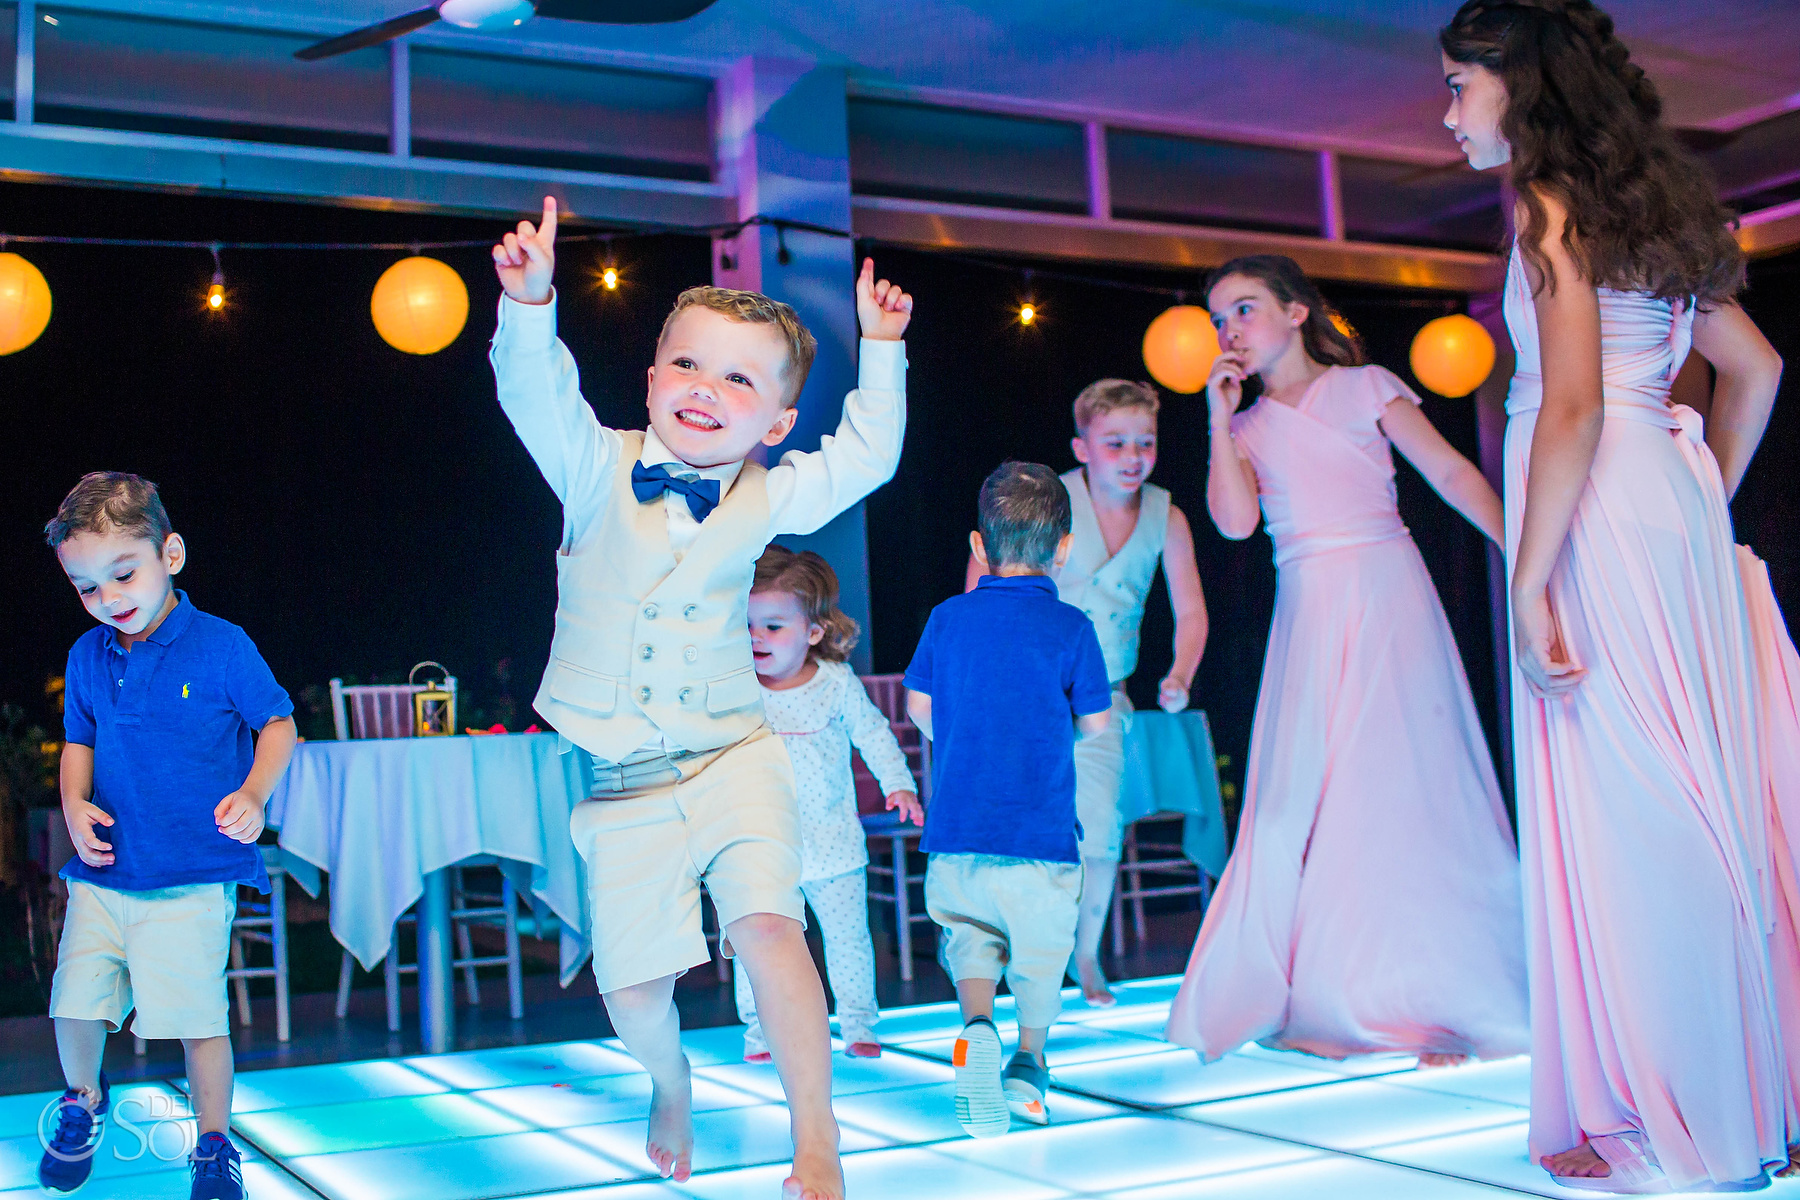 Kids best wedding experience Riu Palace Mexico Photographer